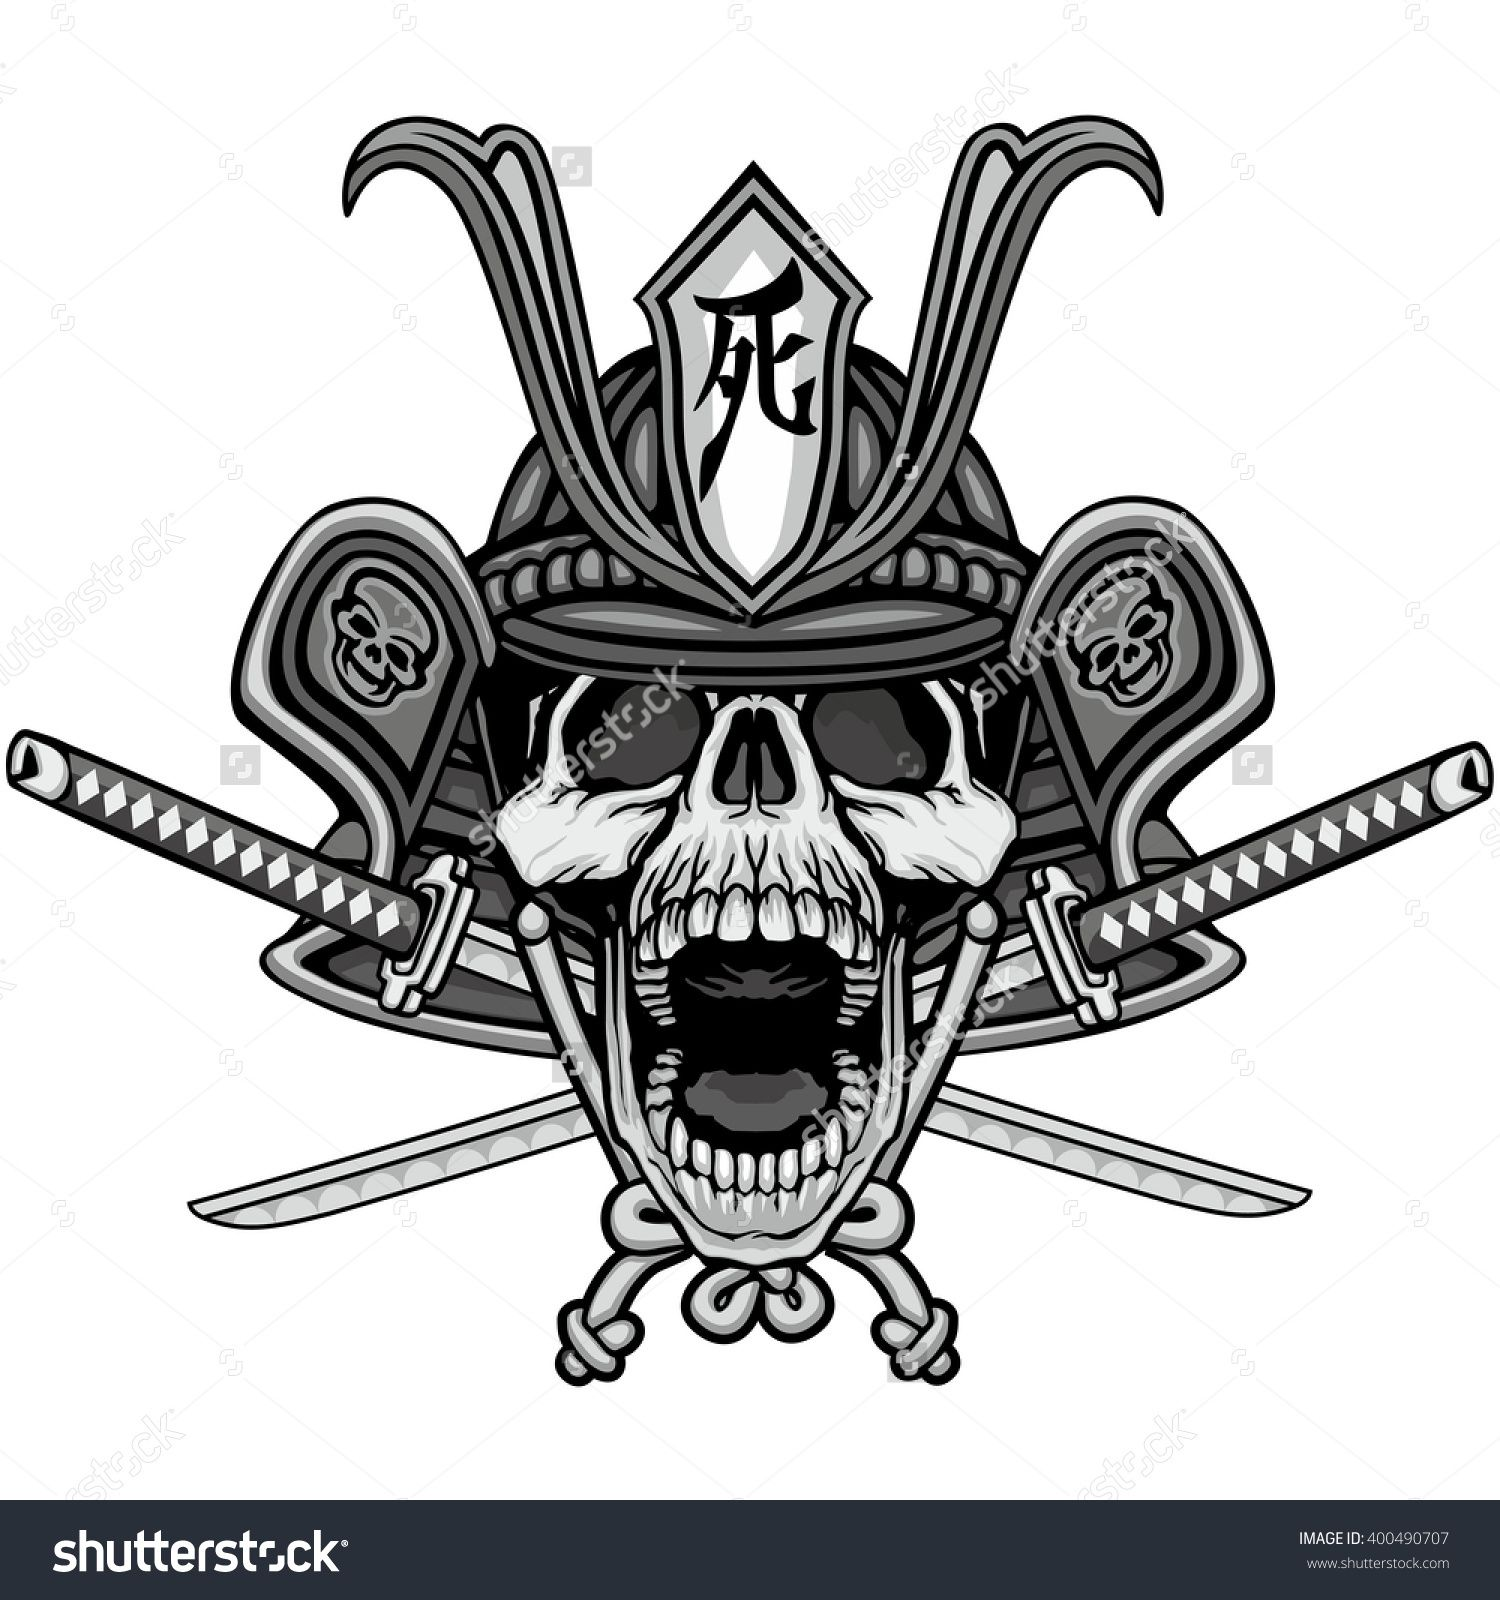 Design tattoos art tattoos tattoo designs oni mask japanese warrior skull